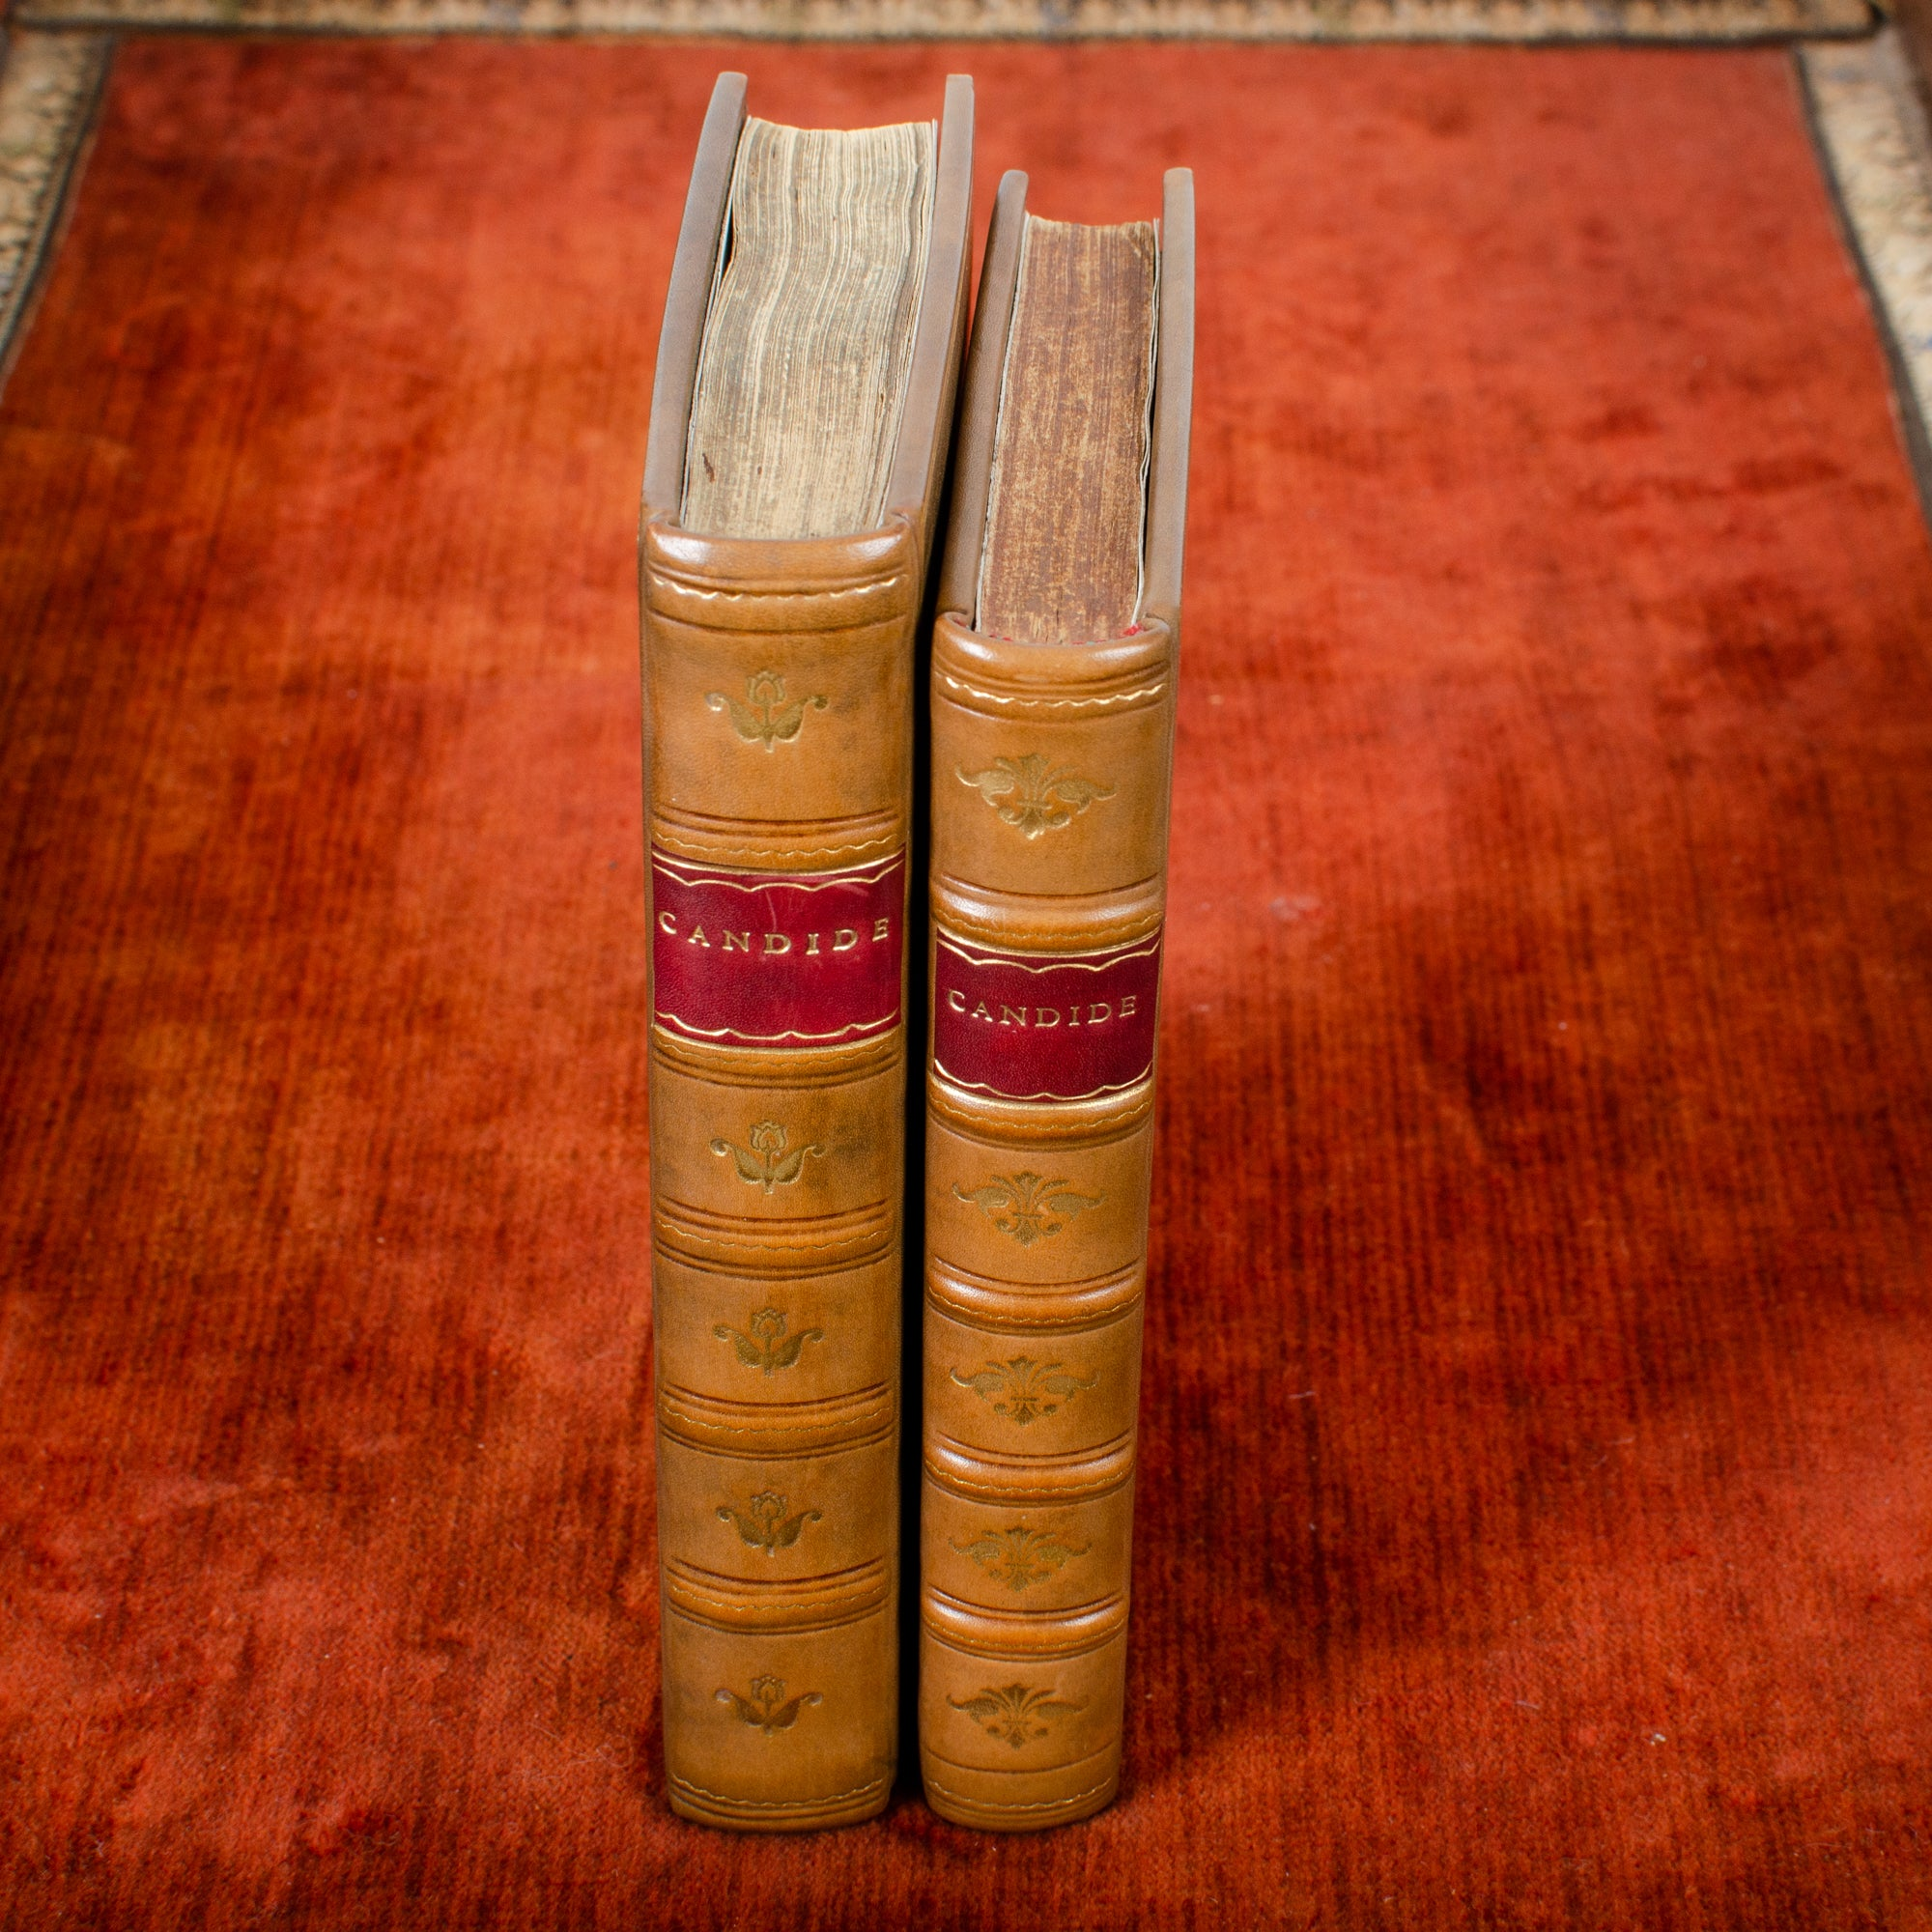 Voltaire's Candide True First Edition & First London Edition